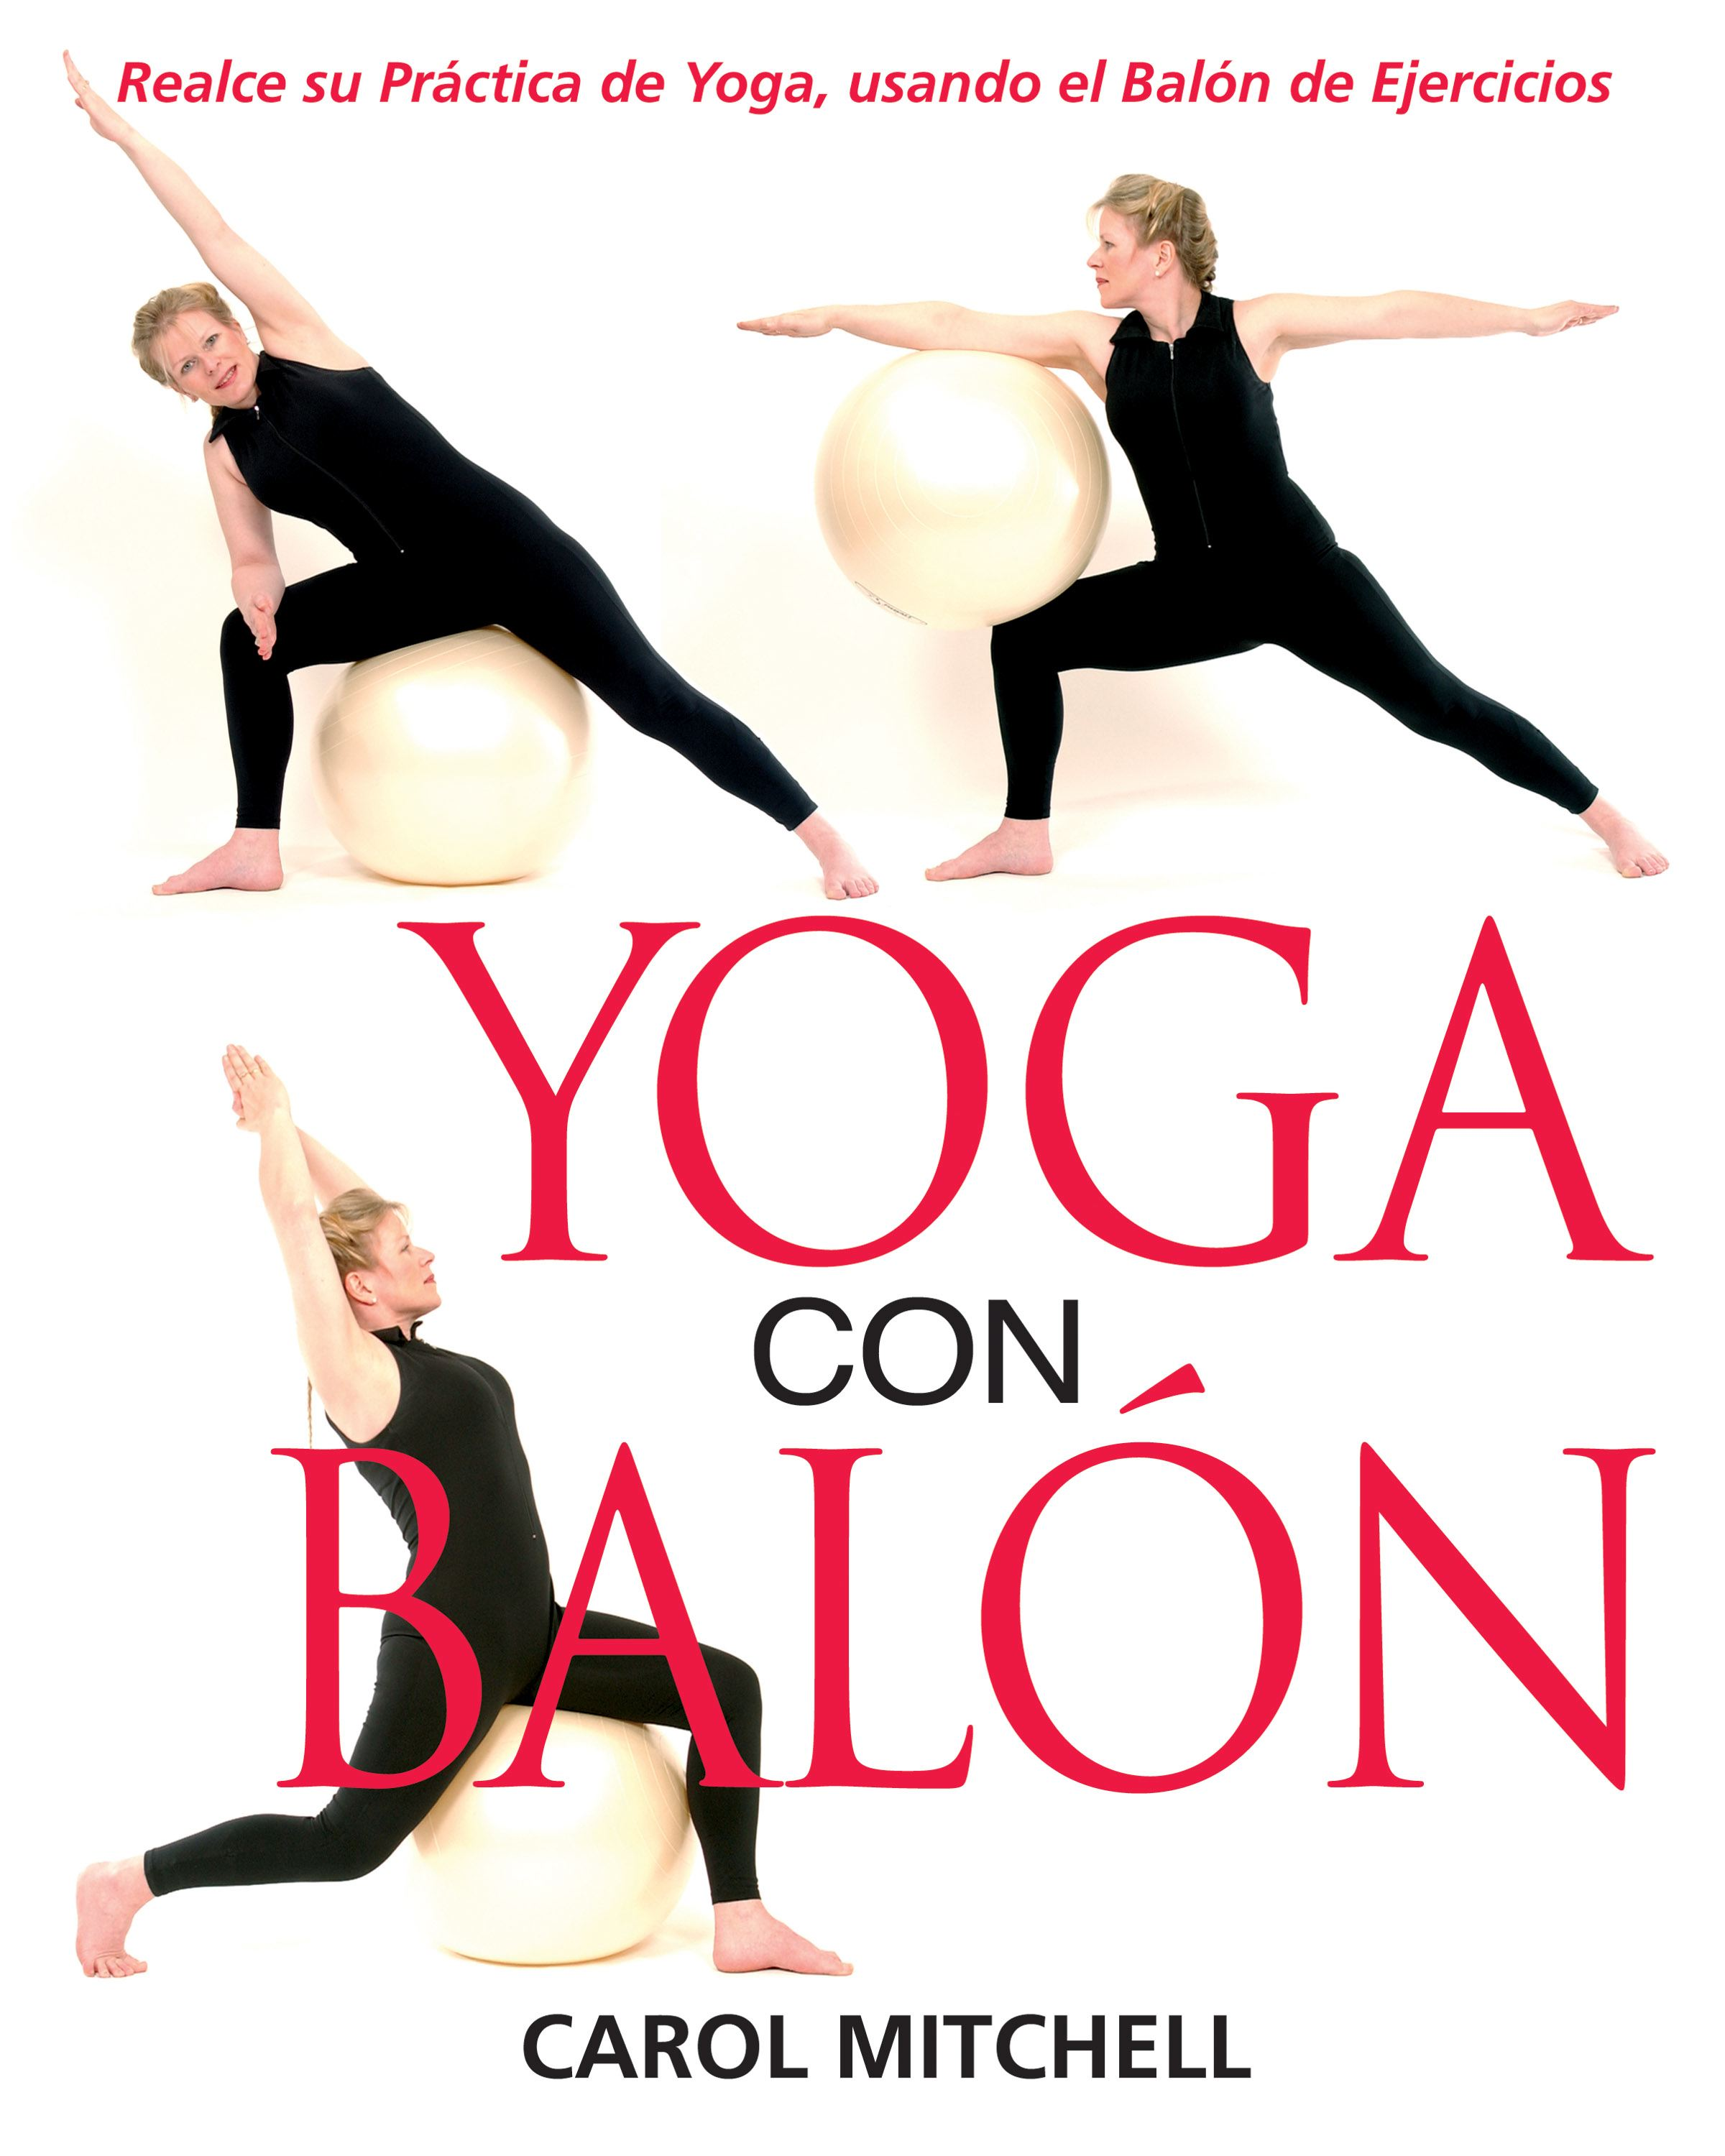 Yoga con balon 9781594770395 hr